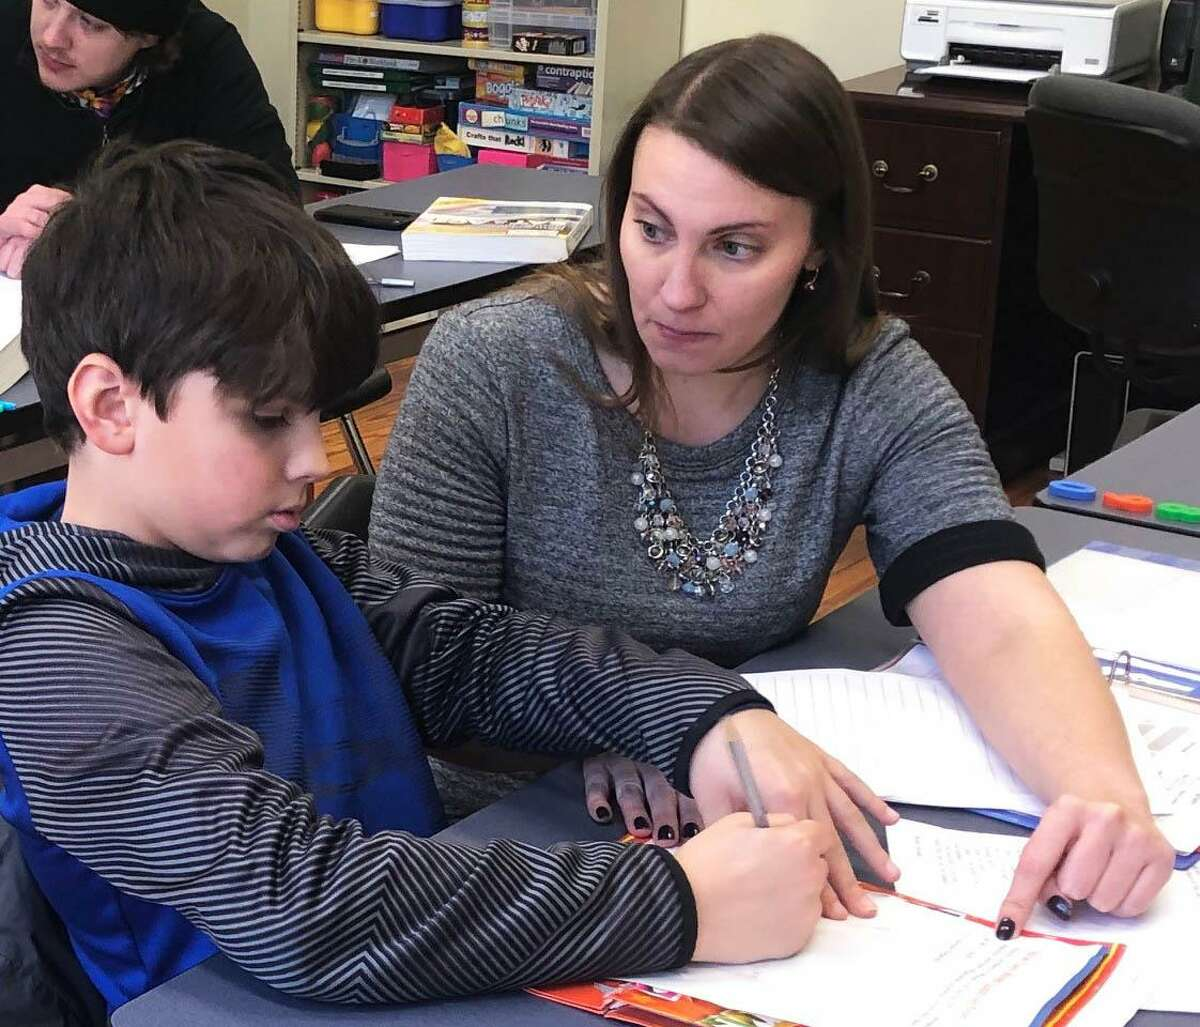 Spectrum/ Reis Learning Center, LLC in New Milford is celebrating its fifth anniversary. The center serves individuals of all ages, from kindergarten through high school, as well as adults, offering tutoring, exam prep, enrichment programs, one-time workshops and, new this year, scholarships. Above, owner Jessica Reis encourages student Caleb MacDonald, 9, to review a math problem during Caleb's recent session at the center. February 2019